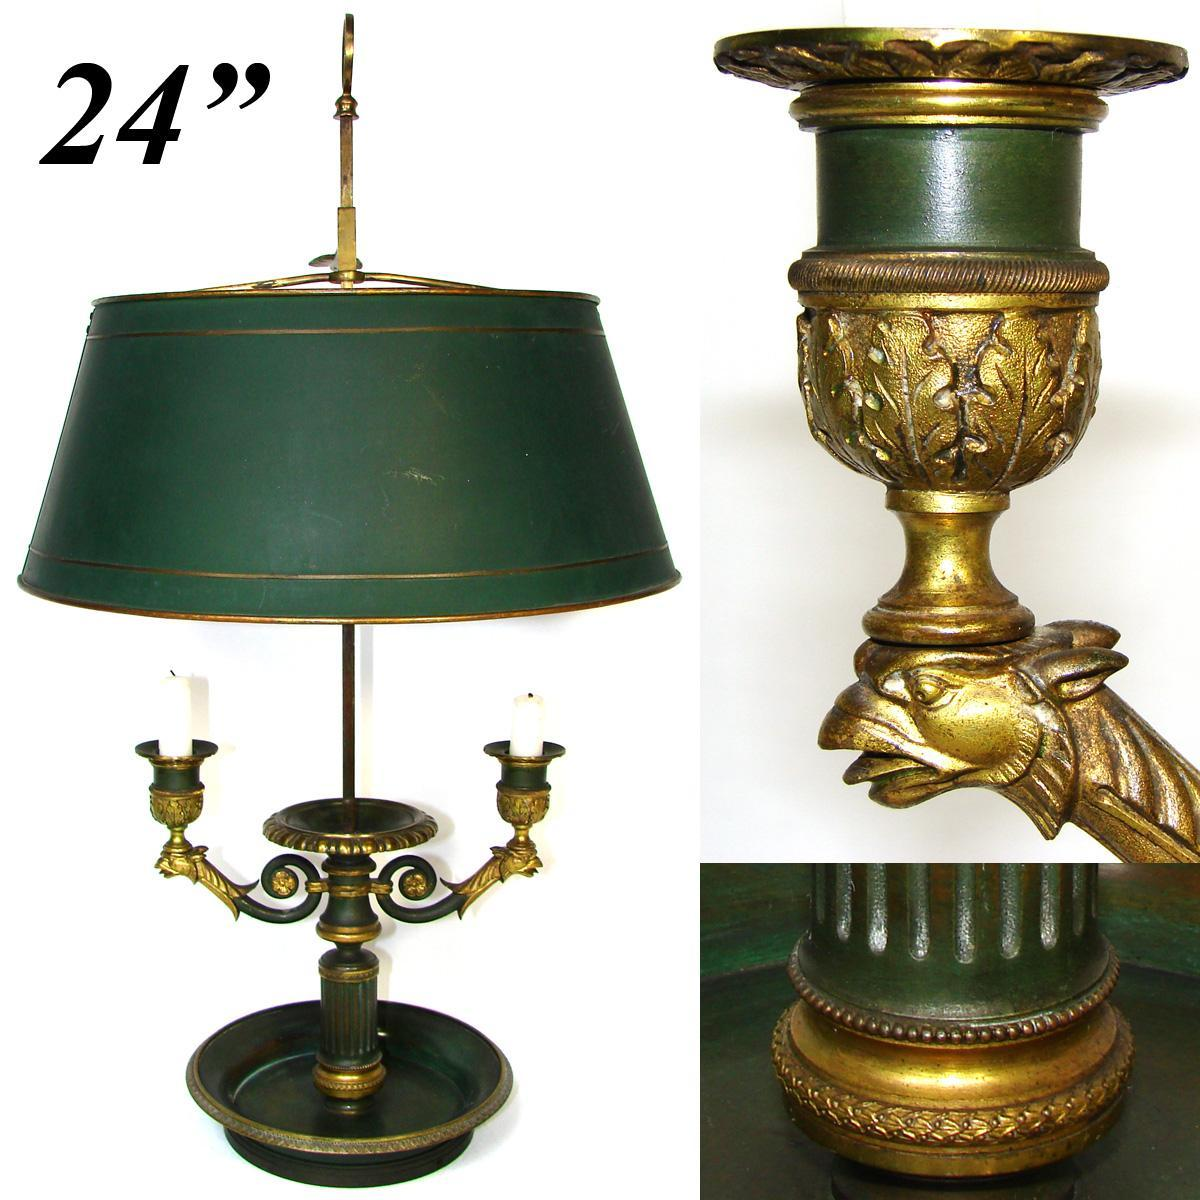 Rare French Bouillotte Table Lamp